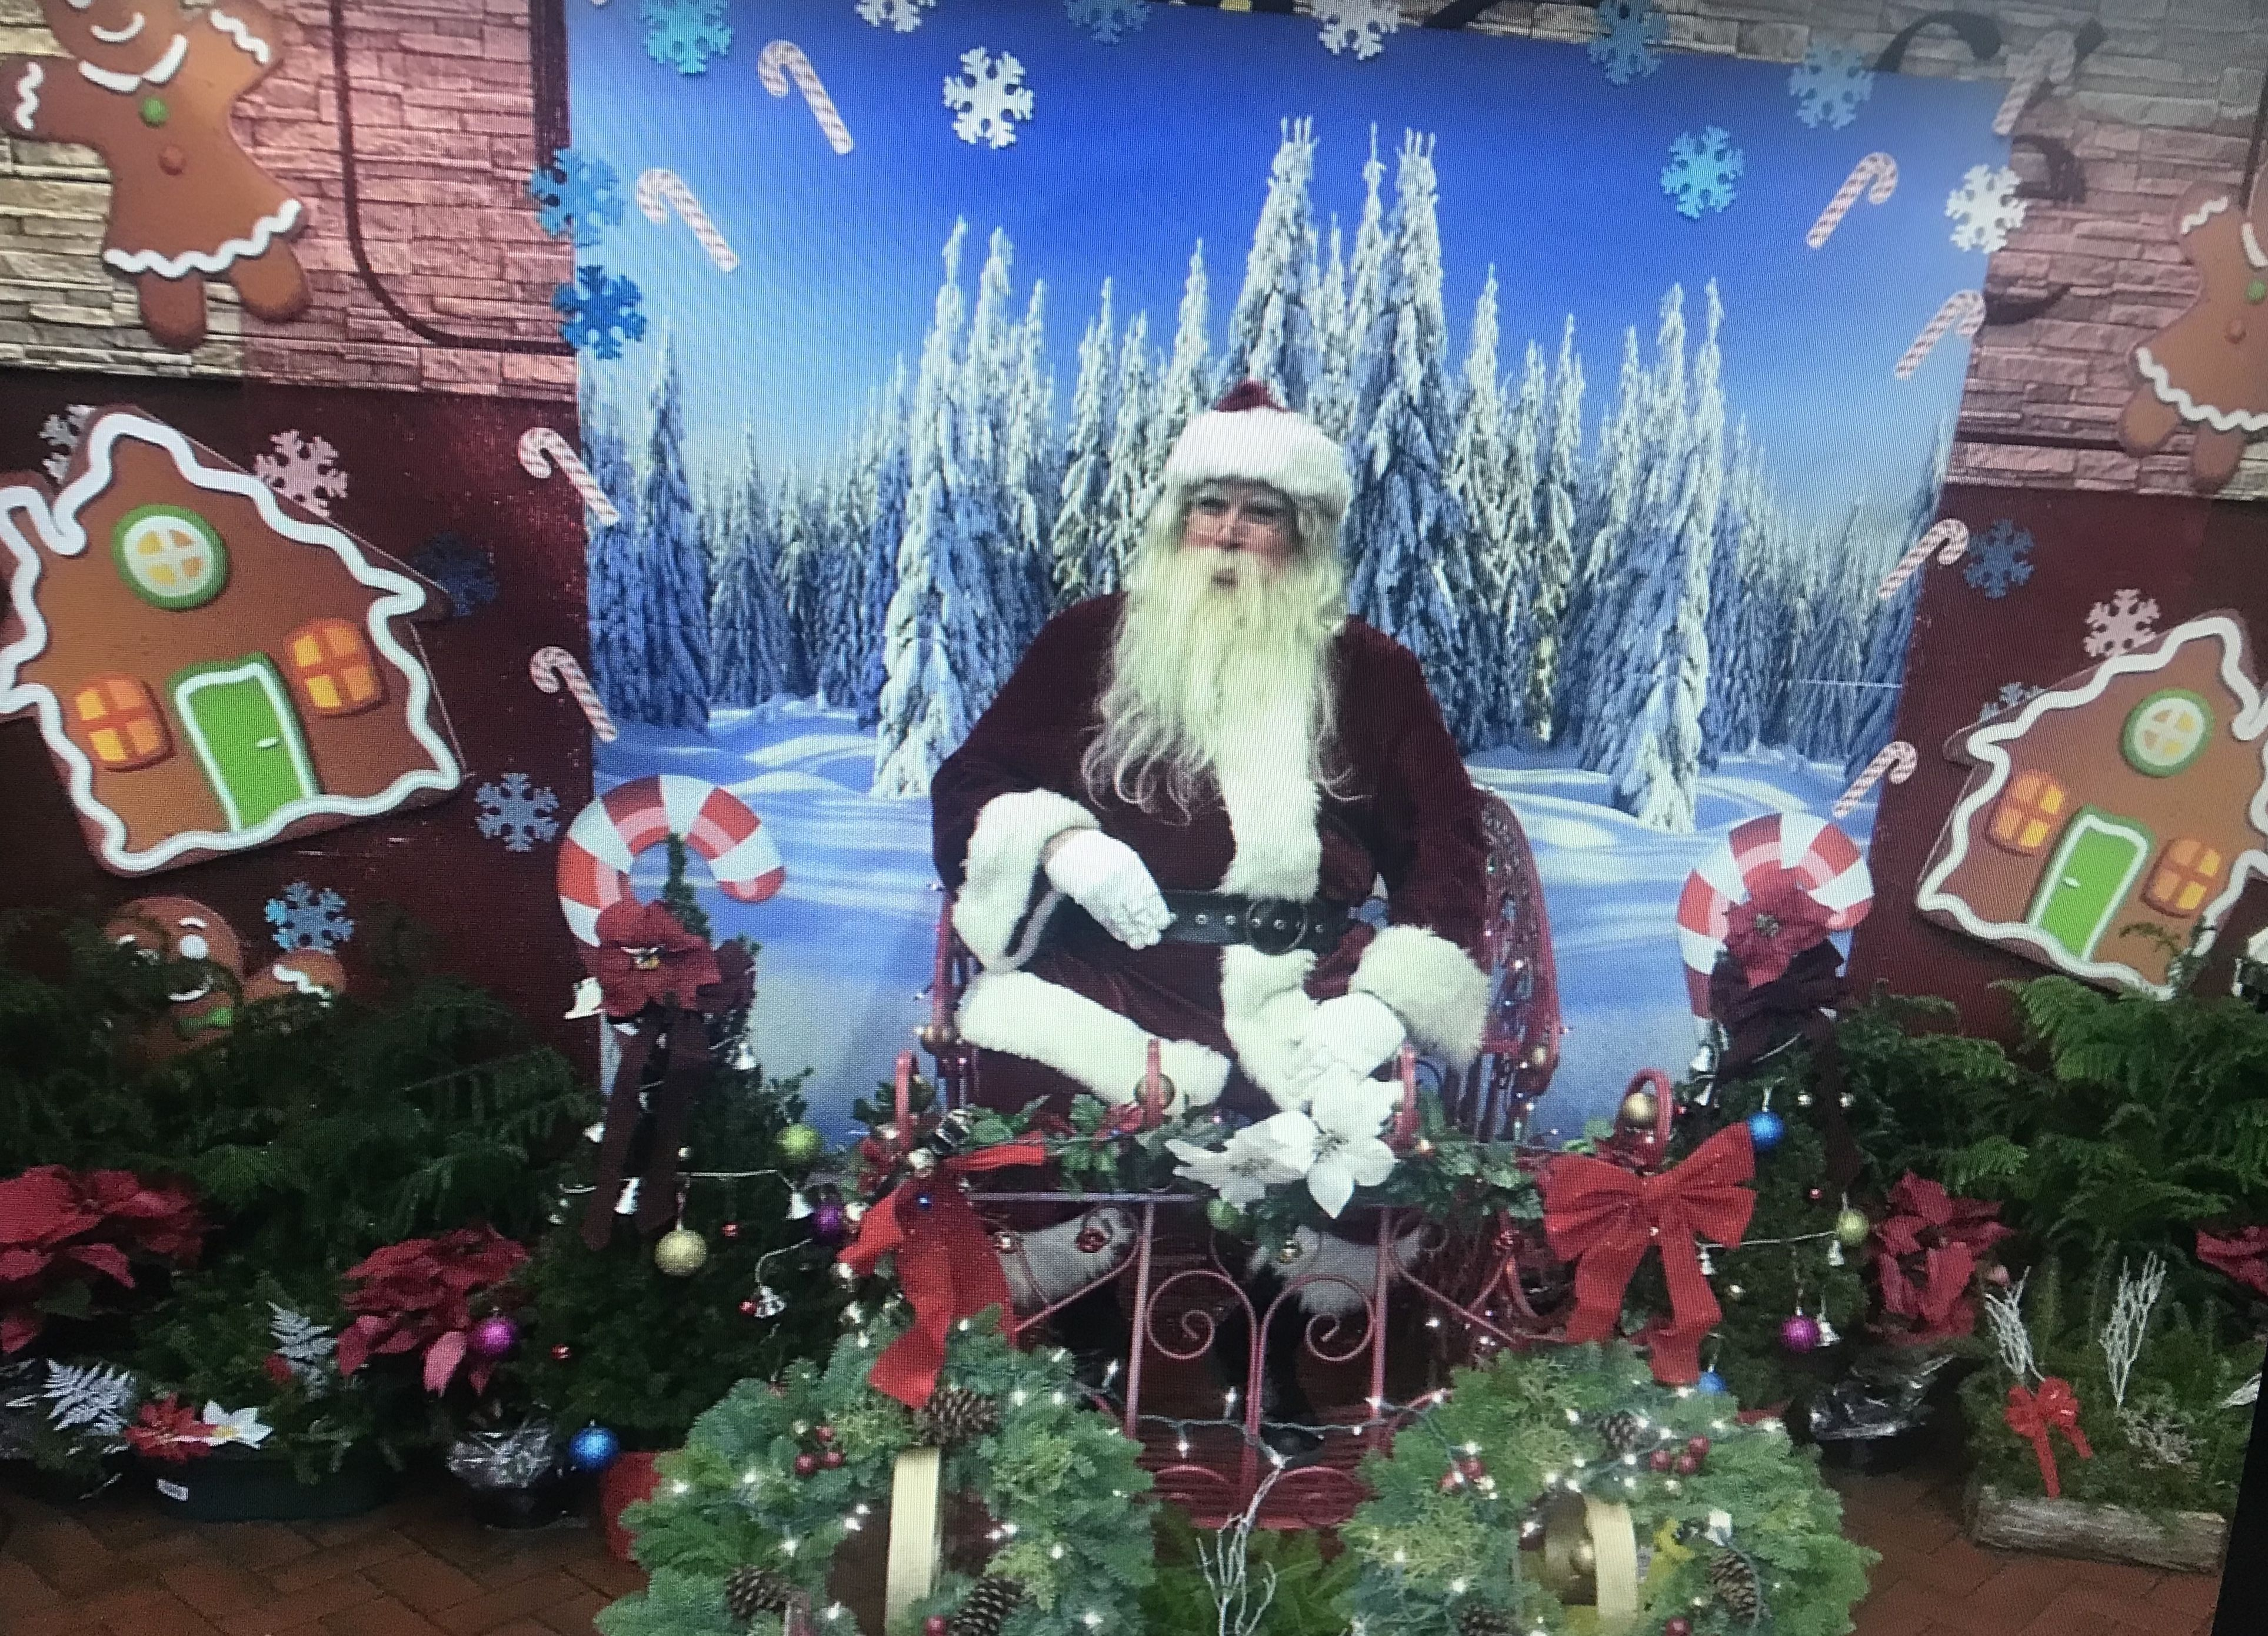 Rent a Santa or Elf for your holiday party. Holiday